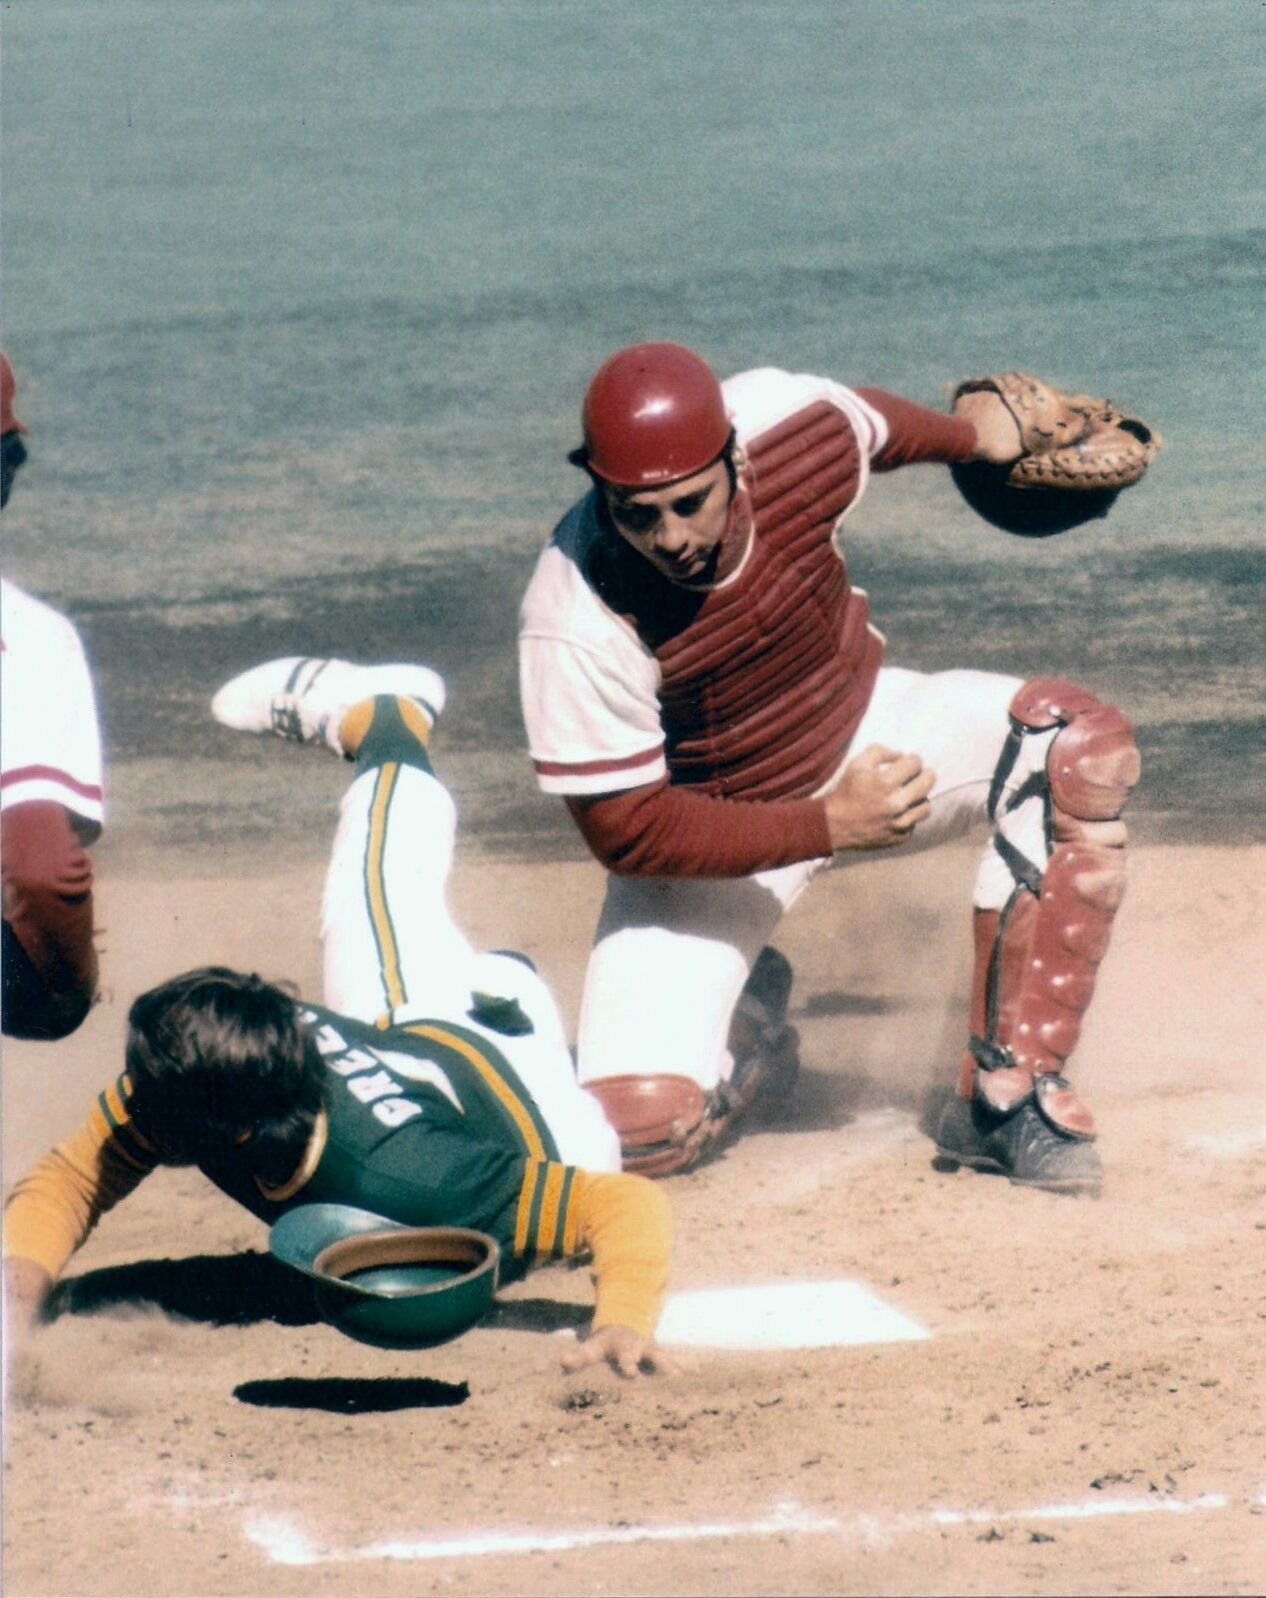 Great Action Johnny Bench Waits To Put Tag On Oakland A S Player 8x10 Reds Johnny Bench Oakland Athletics Baseball Reds Baseball